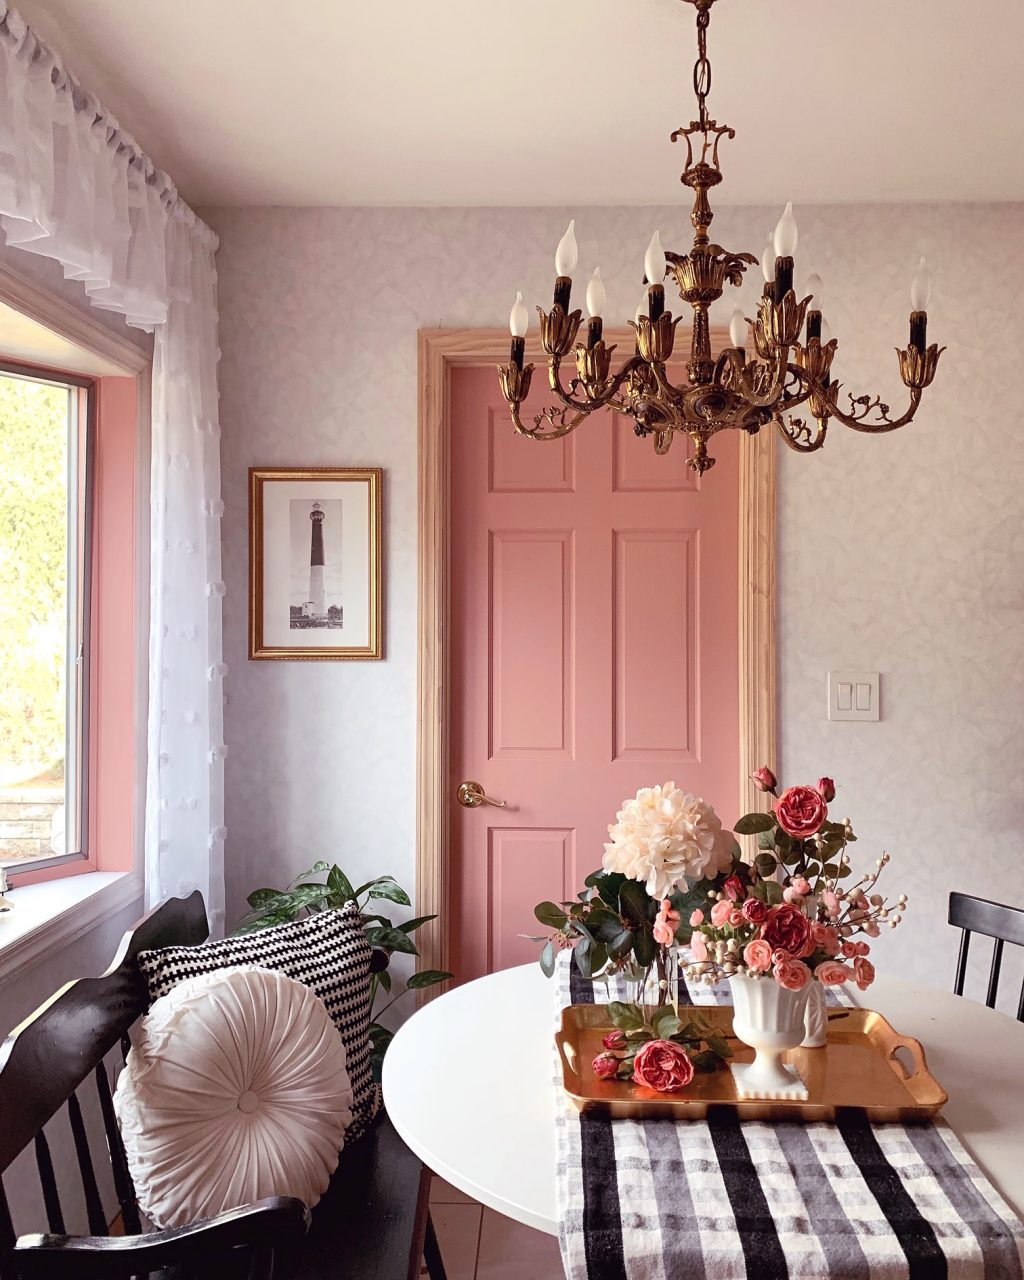 Statement colors in home decor